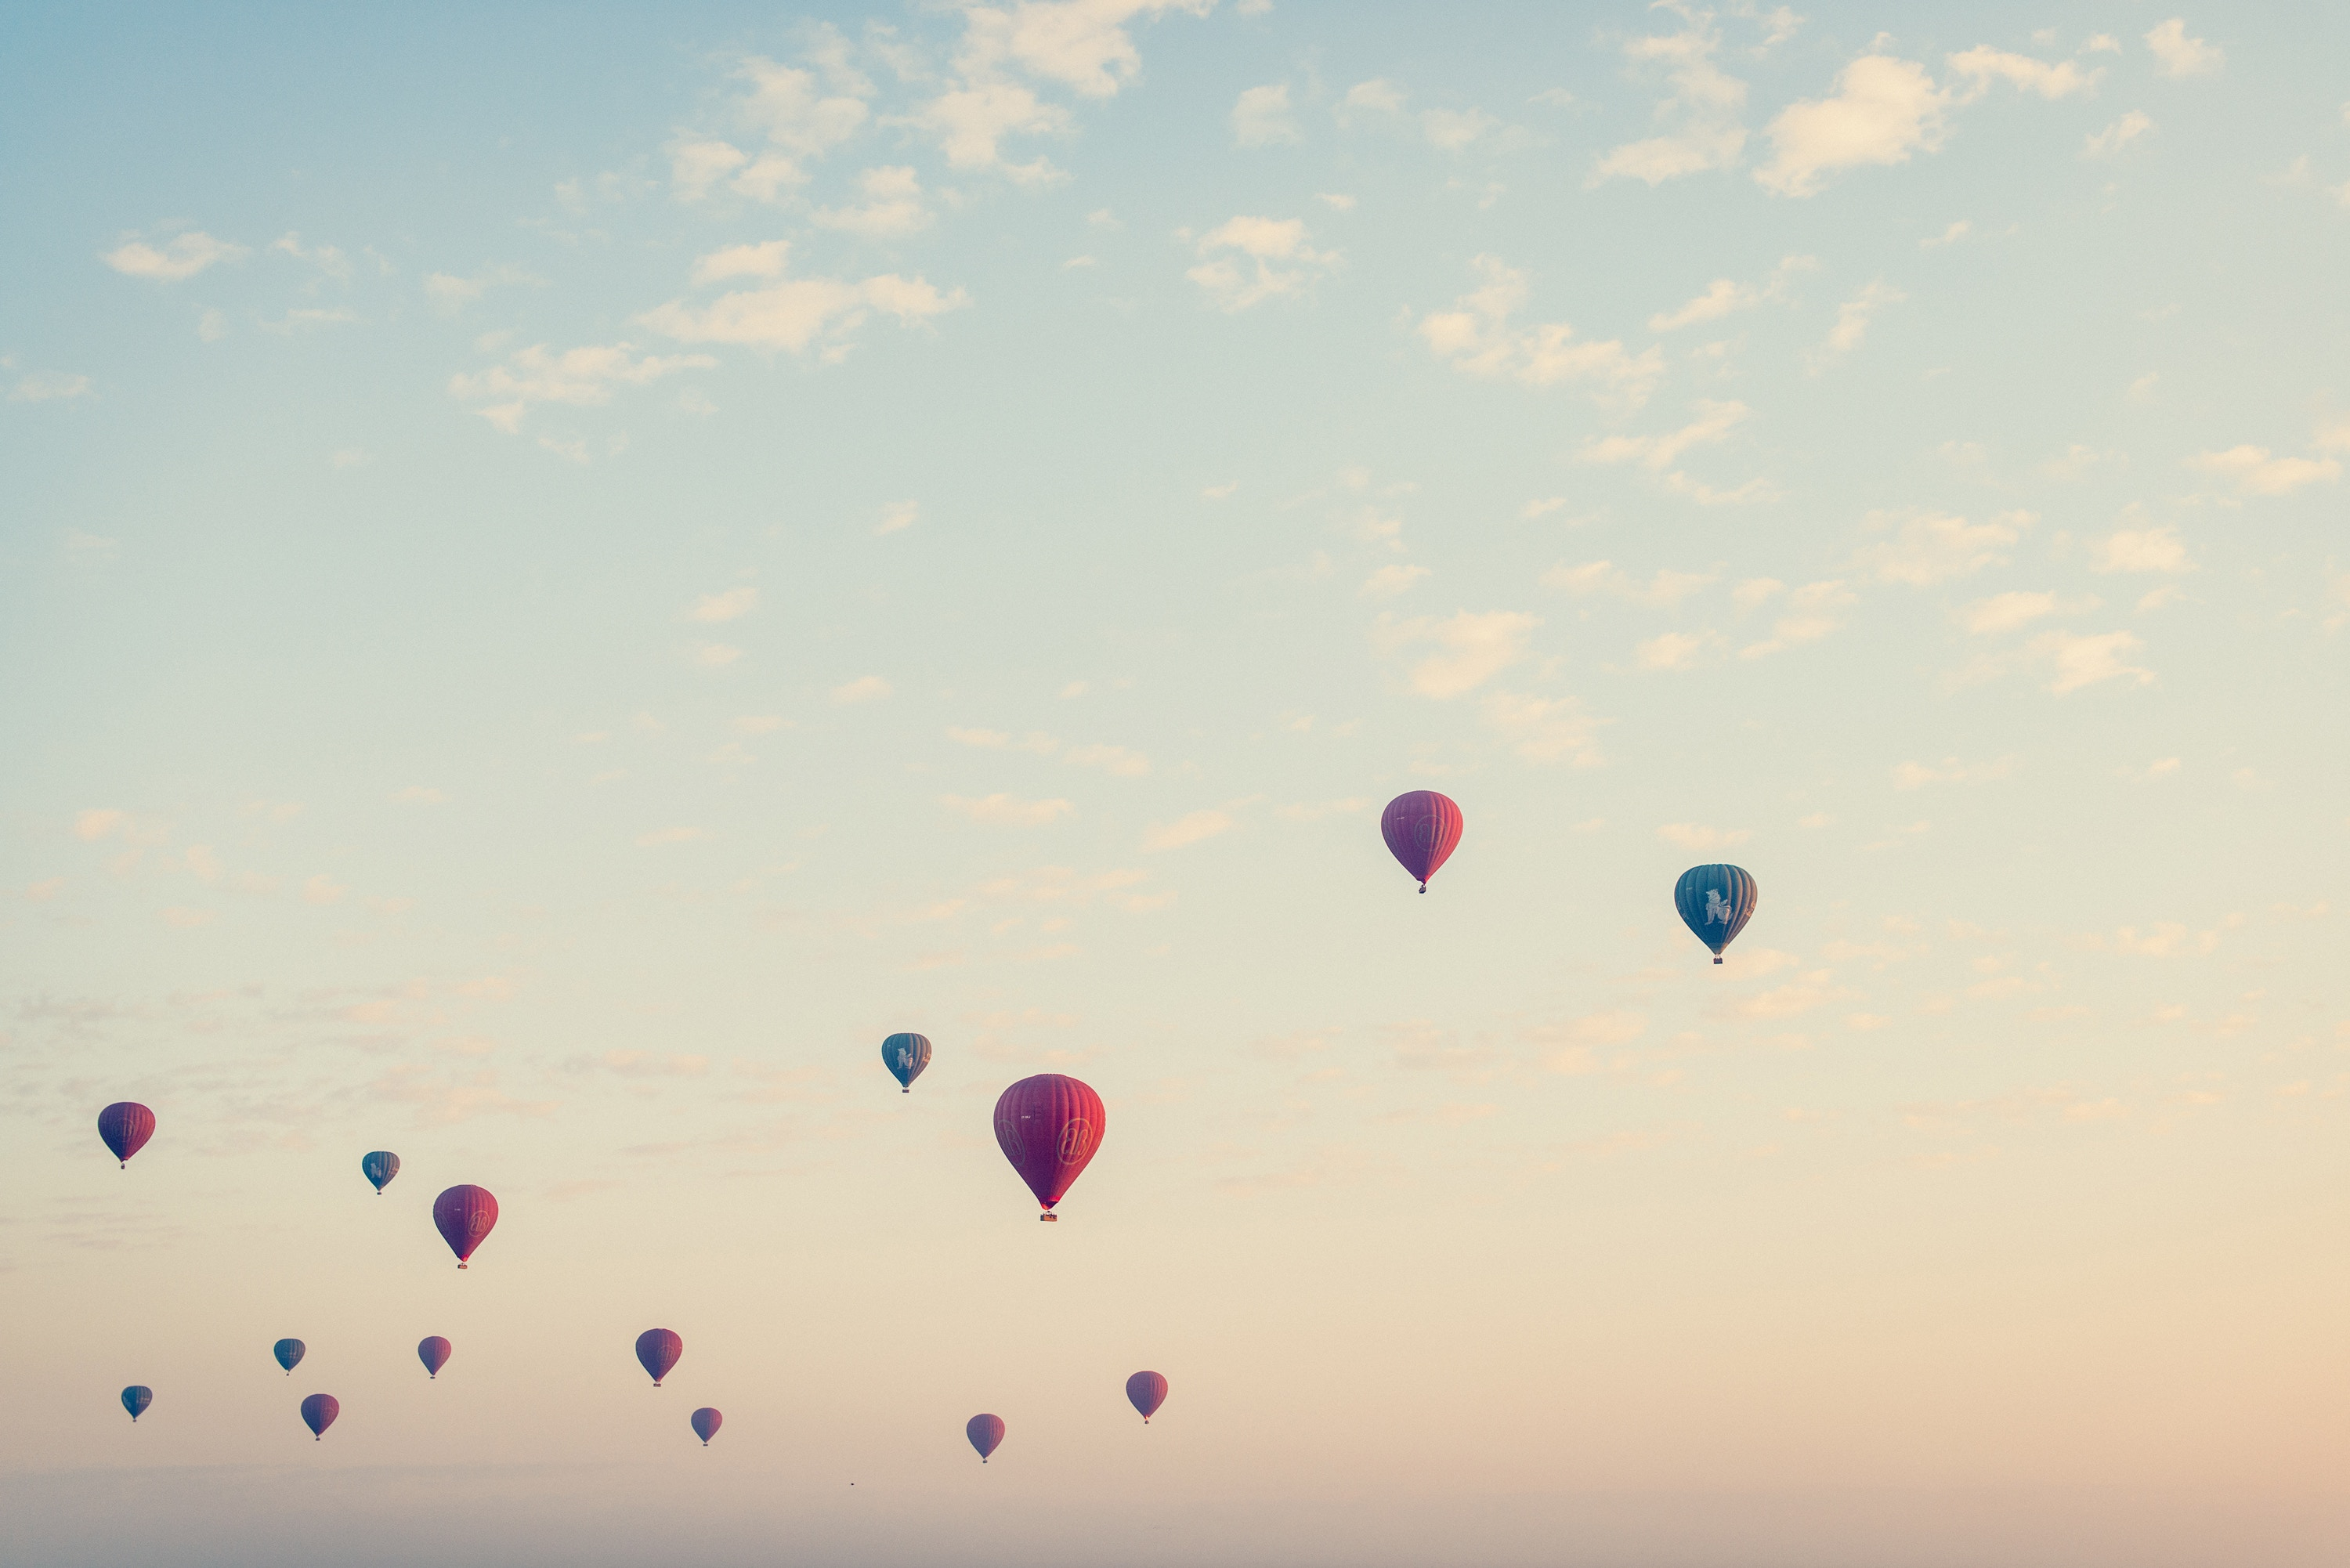 Hot Air Baloons in the Sky